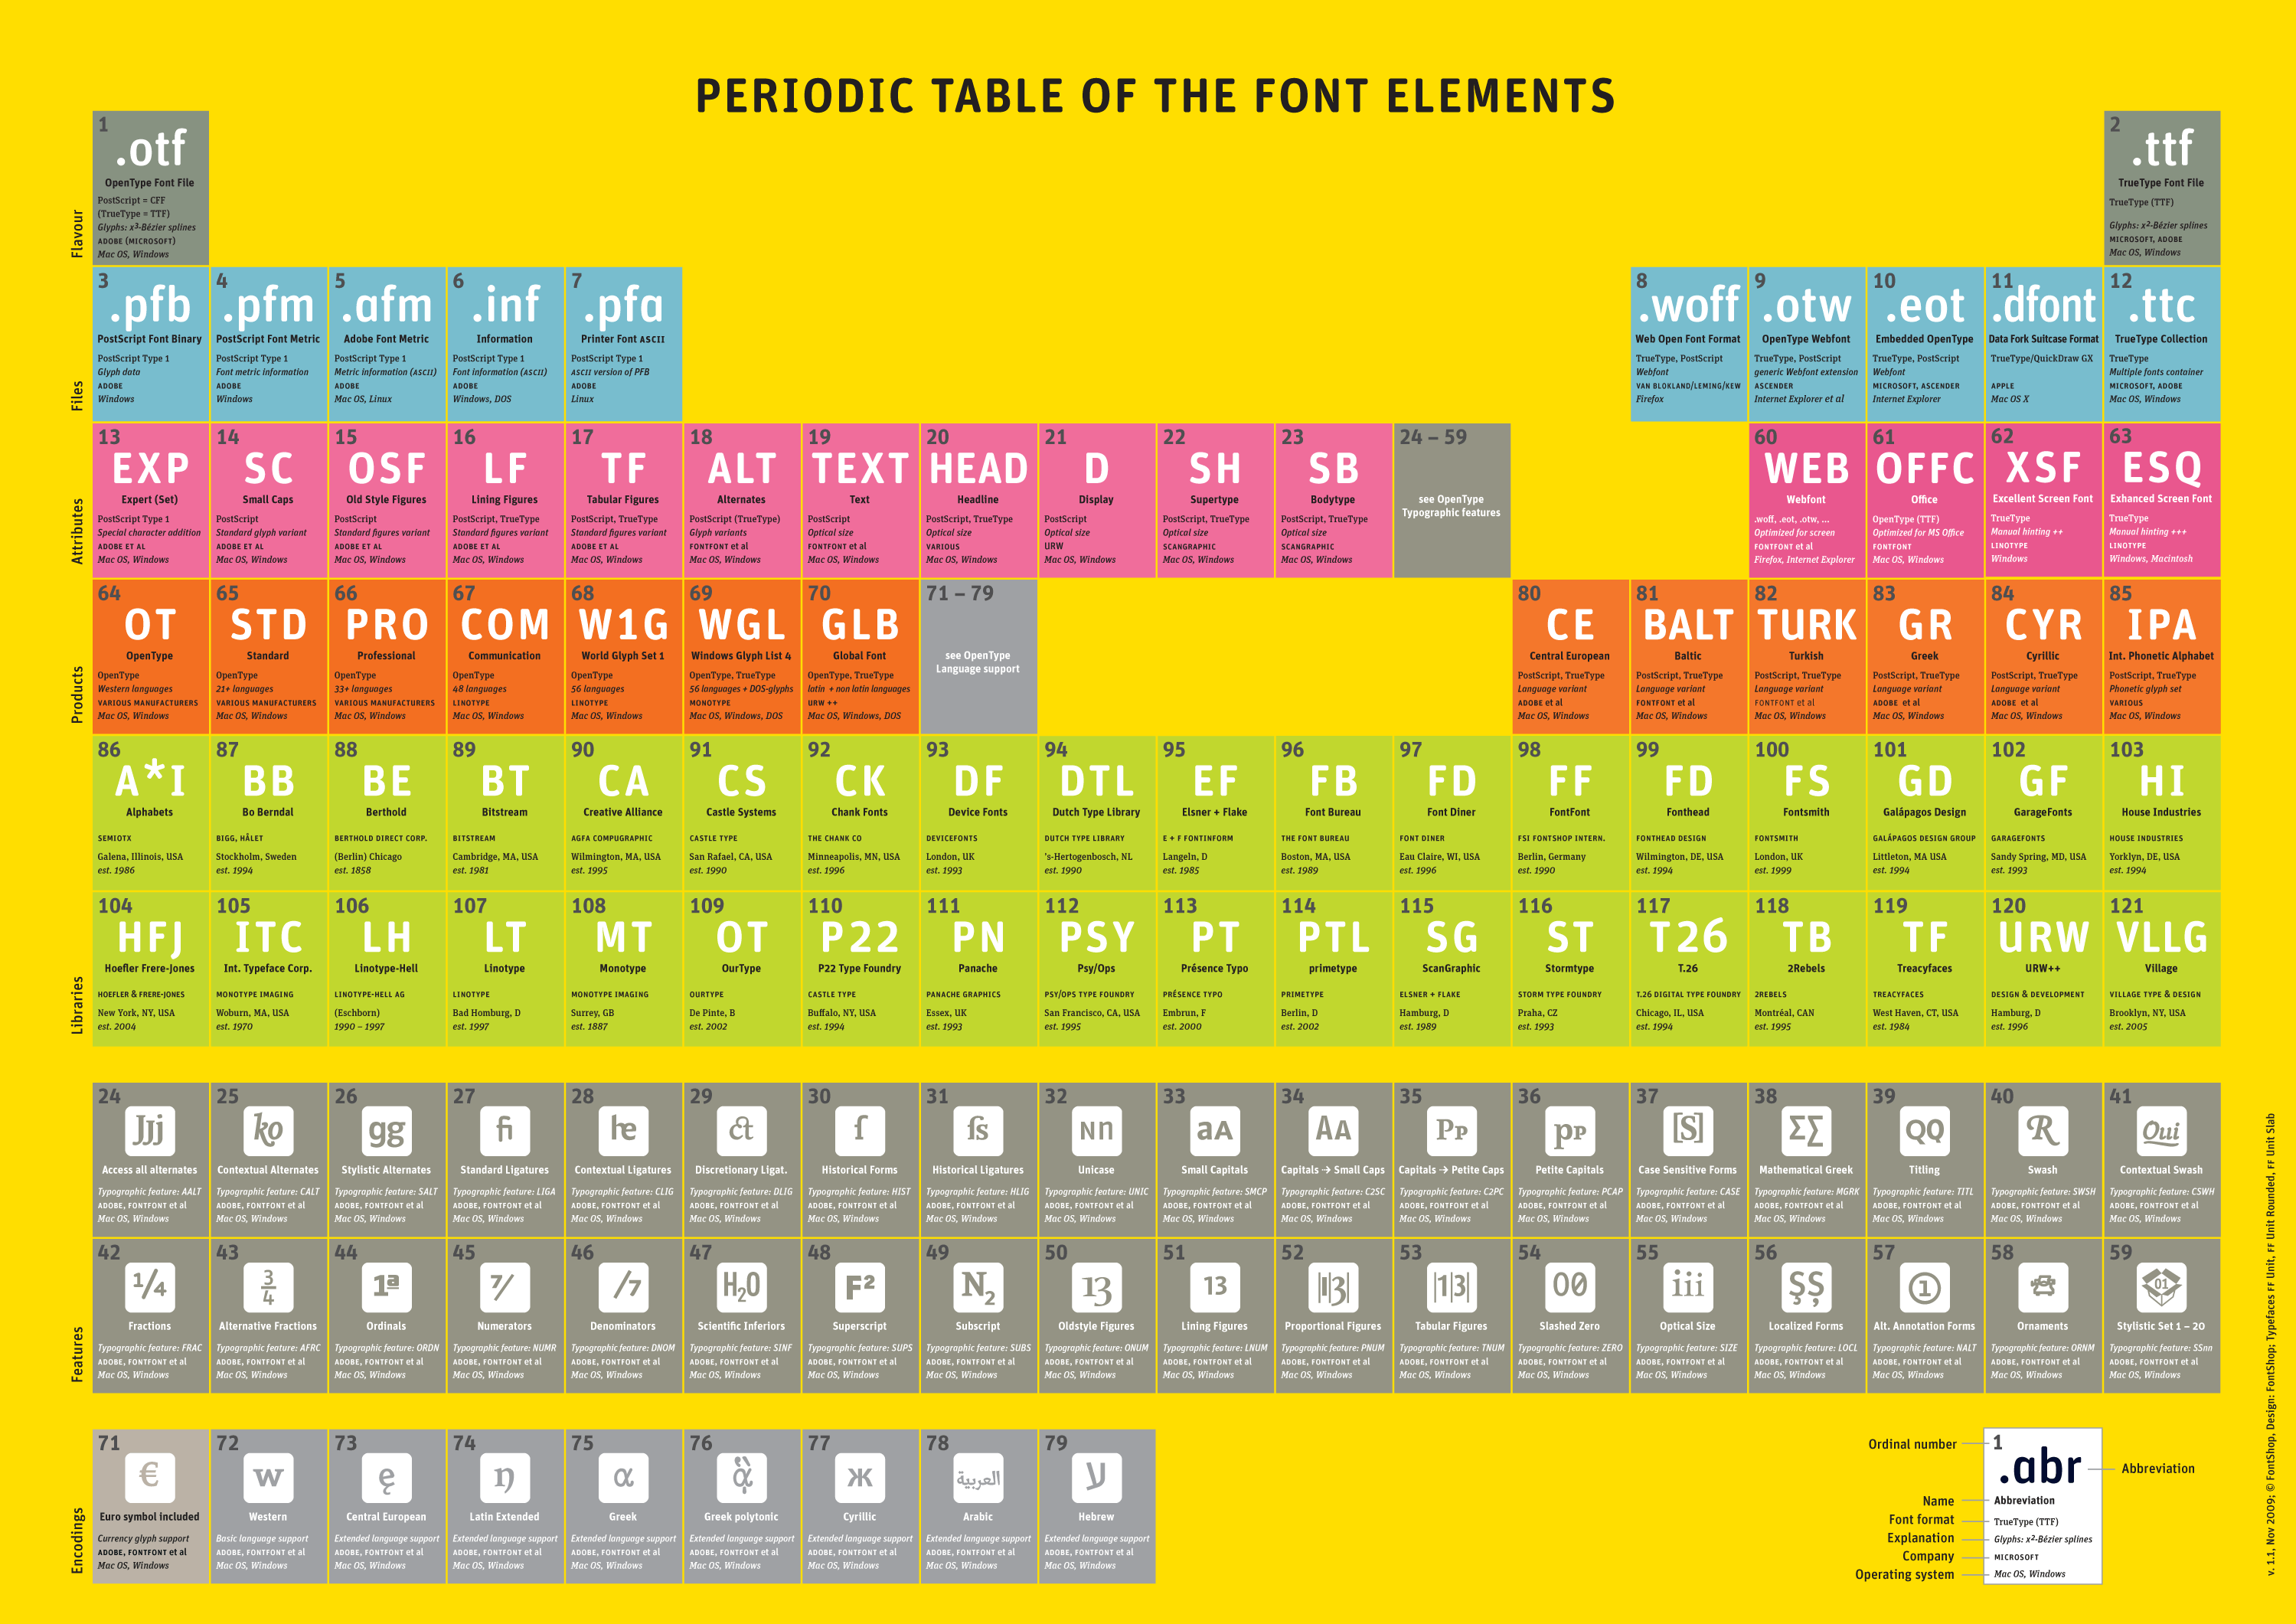 Periodic table of font elements 11 photos by fontshop periodic table of font elements 11 photos by fontshop imported gamestrikefo Image collections